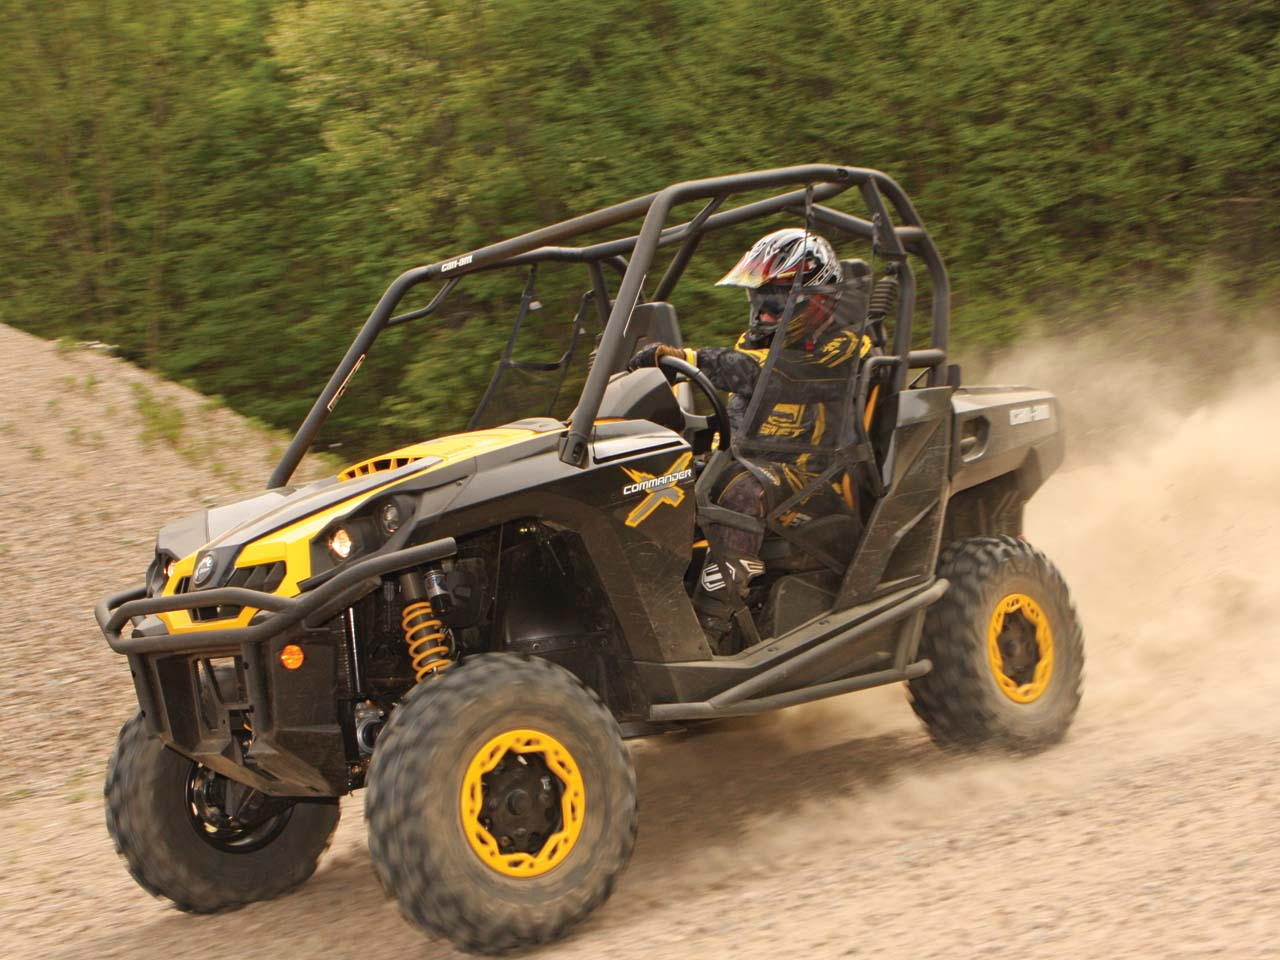 Pete slides the new can am commander 1000x through a corner